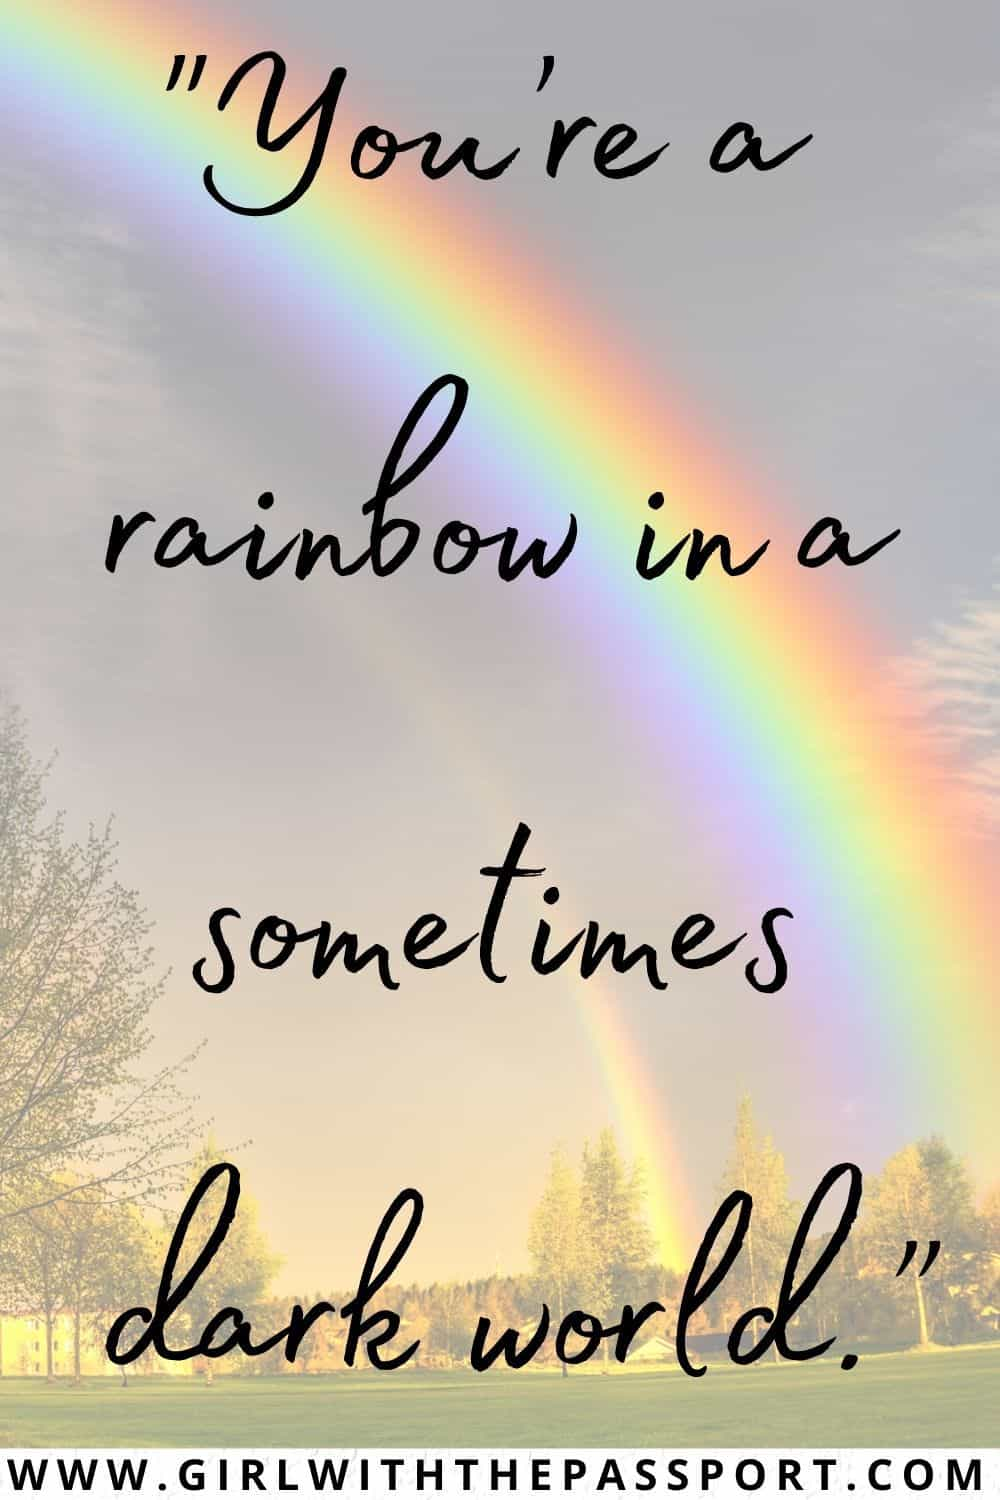 Short Quotes about Rainbows